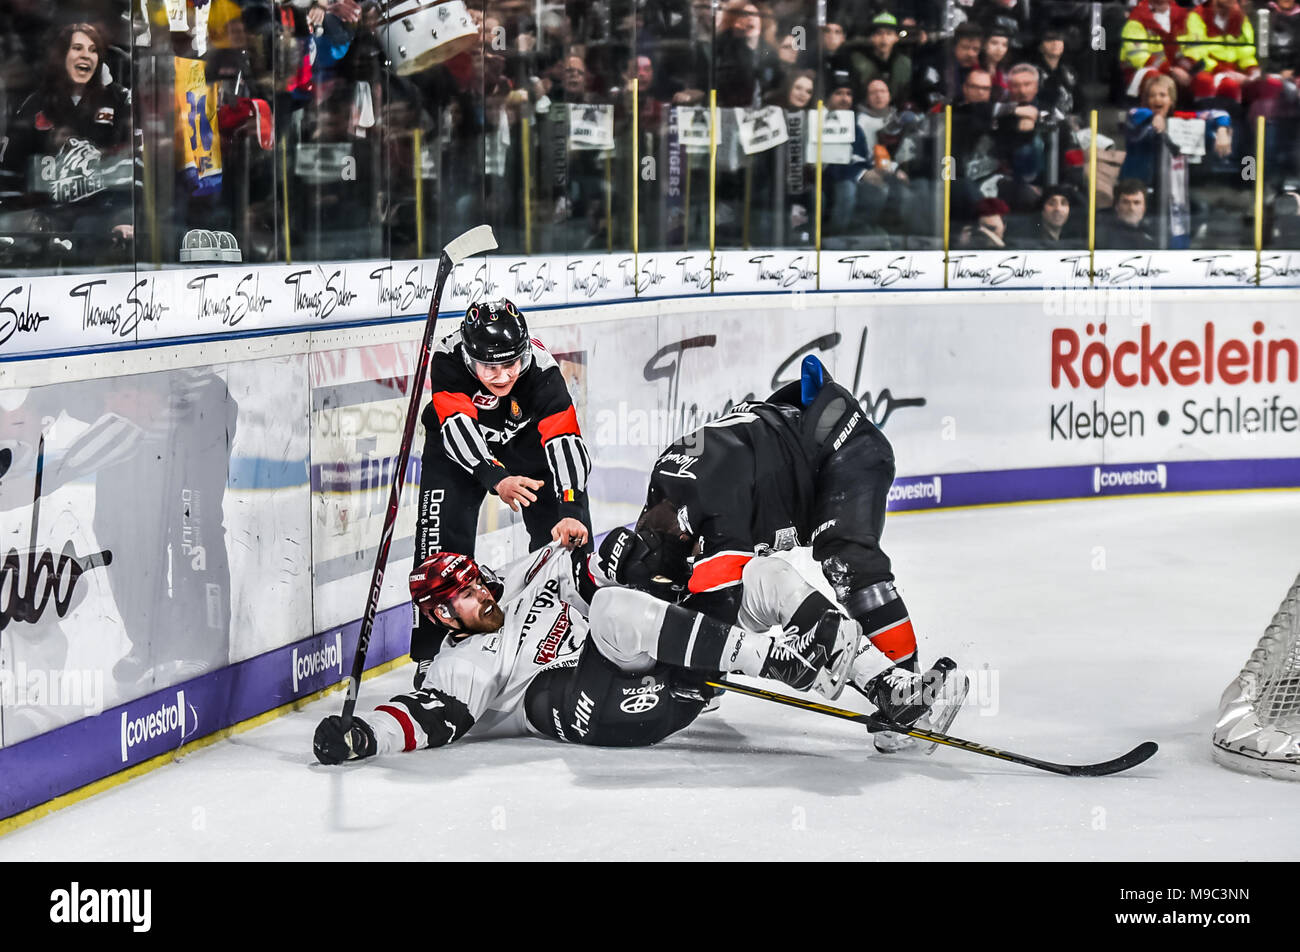 Nurenberg, Germany 24 Mar 2018. DEL Playoffs Viertelfinale, Spiel 5 - Thomas Sabo Ice Tigers vs. Kšlner Haie - Image: (From L-R)  Pascal Zerressen (Kšlner Haie, #27) and Yasin Ehliz (Ice Tigers, #42) getting off-setting penalties for roughing after the whistle.   Foto: HMB Media/Ryan Evans Credit: Ryan Evans/Alamy Live News - Stock Image